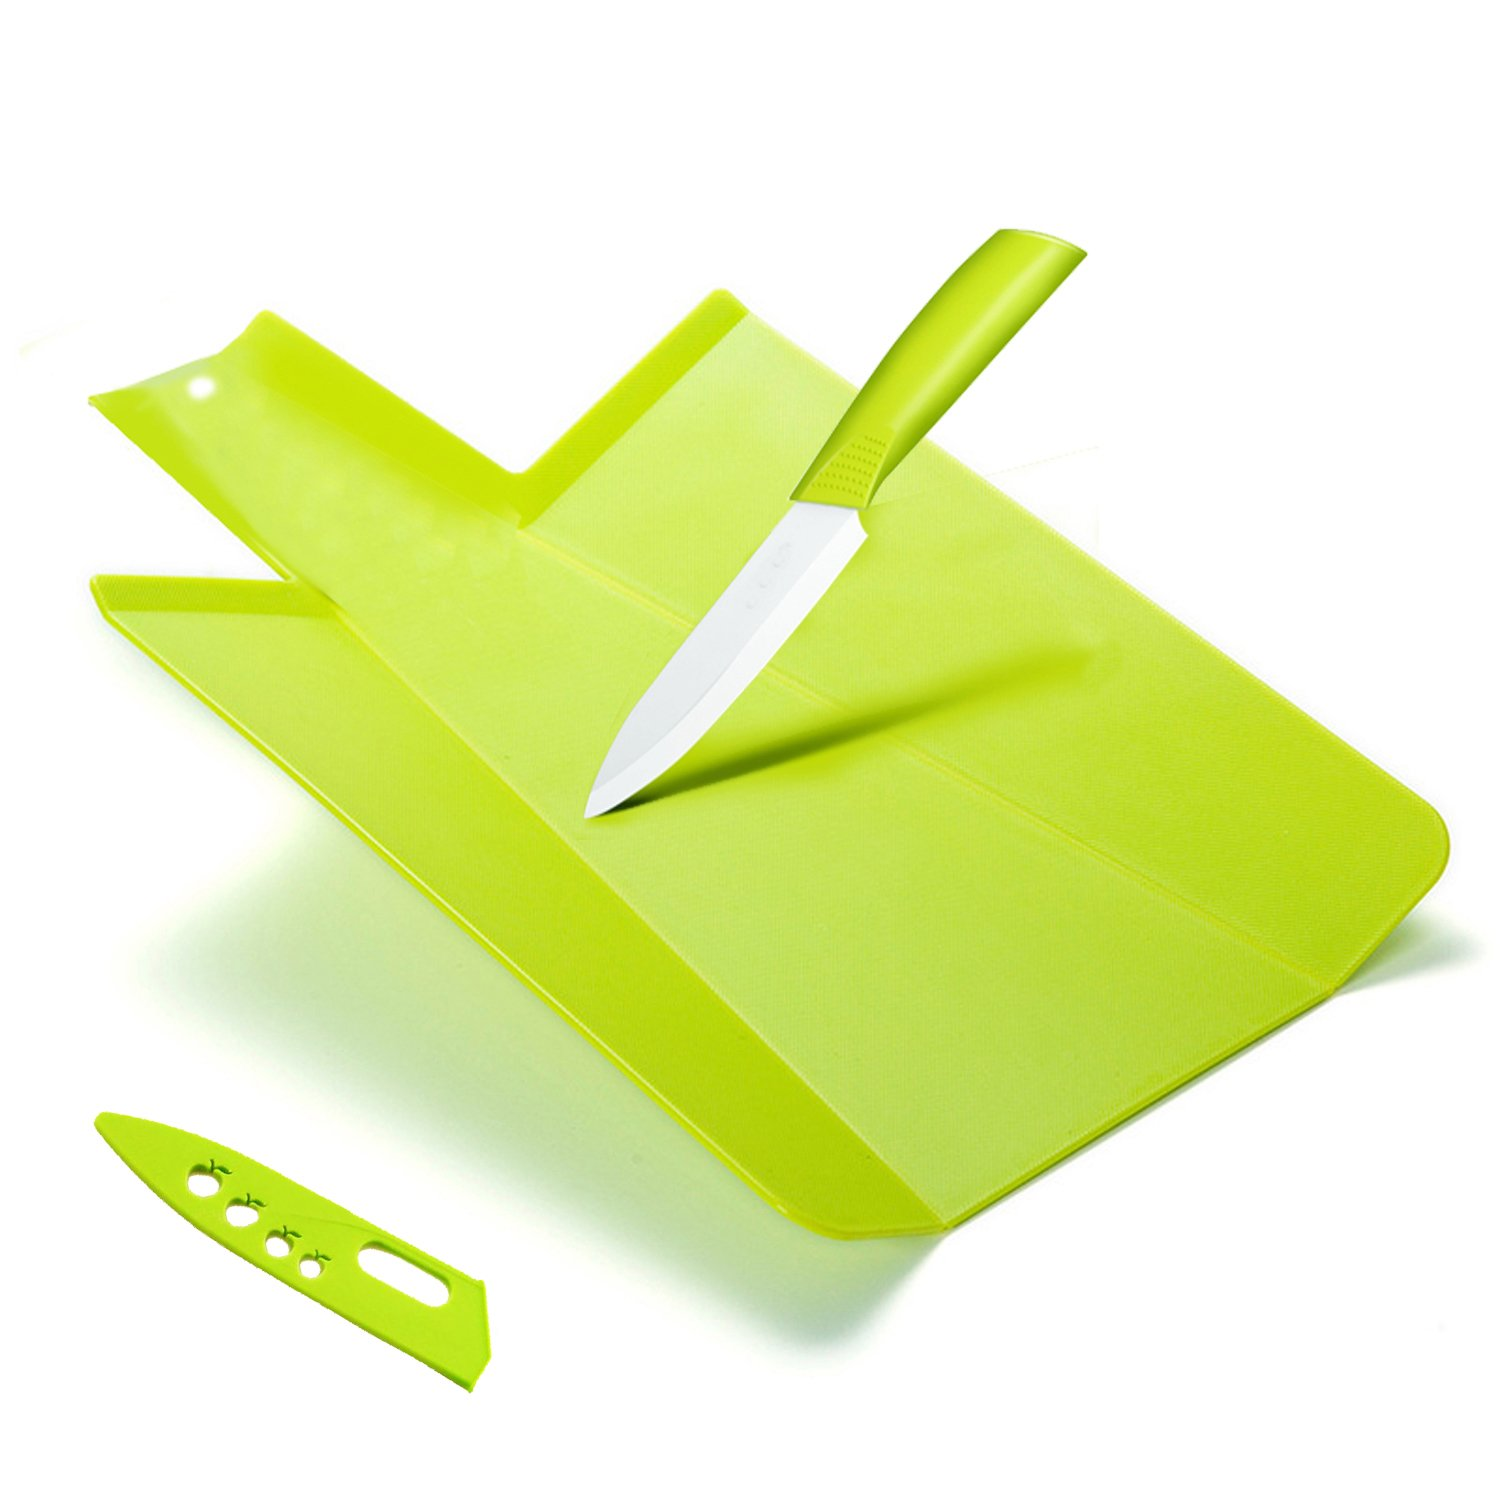 Kioos Foldable Cutting Board And 5 Inch Ceramic Knife Set Multifunctional Chopping Block and Chute with Portable Camping Outdoor Cutlery Green by Kioos (Image #1)